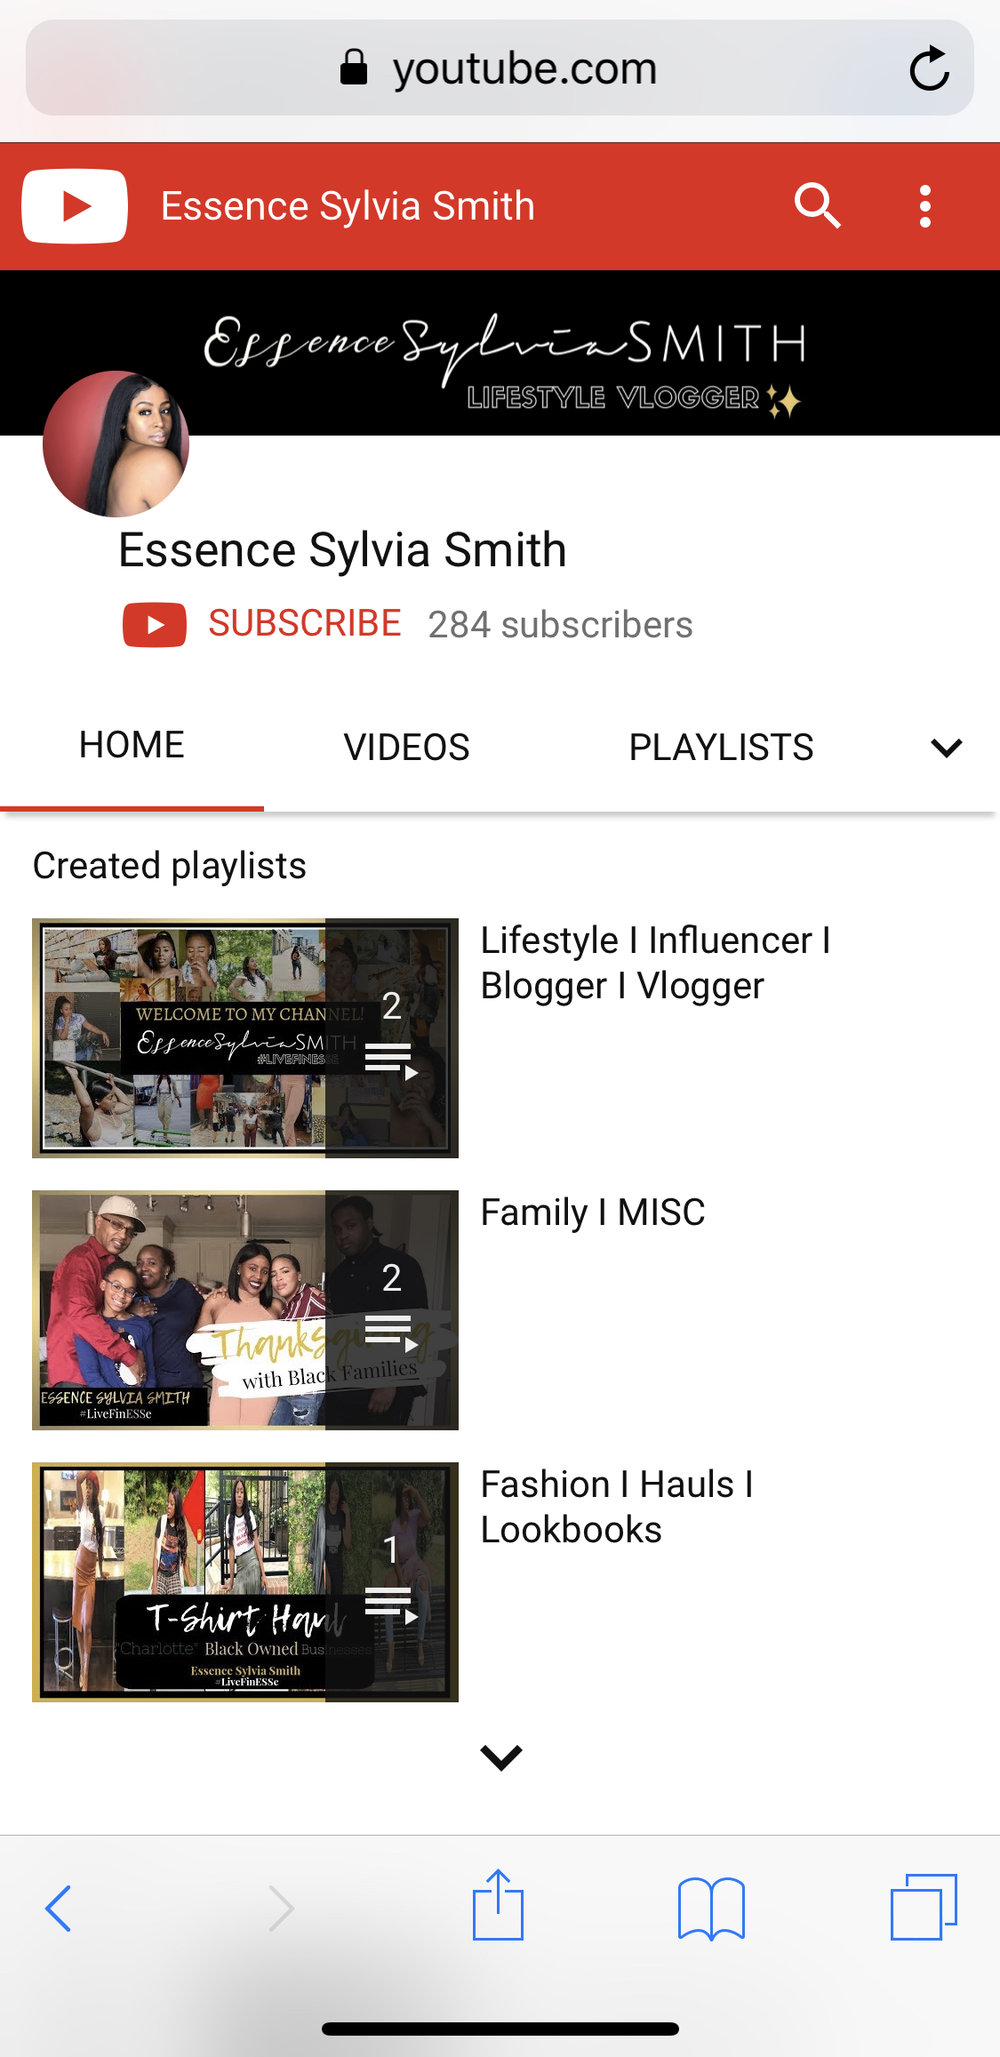 After-Youtube-ESSENCE SYLVIA SMITH-LIVE FINESSE.jpg